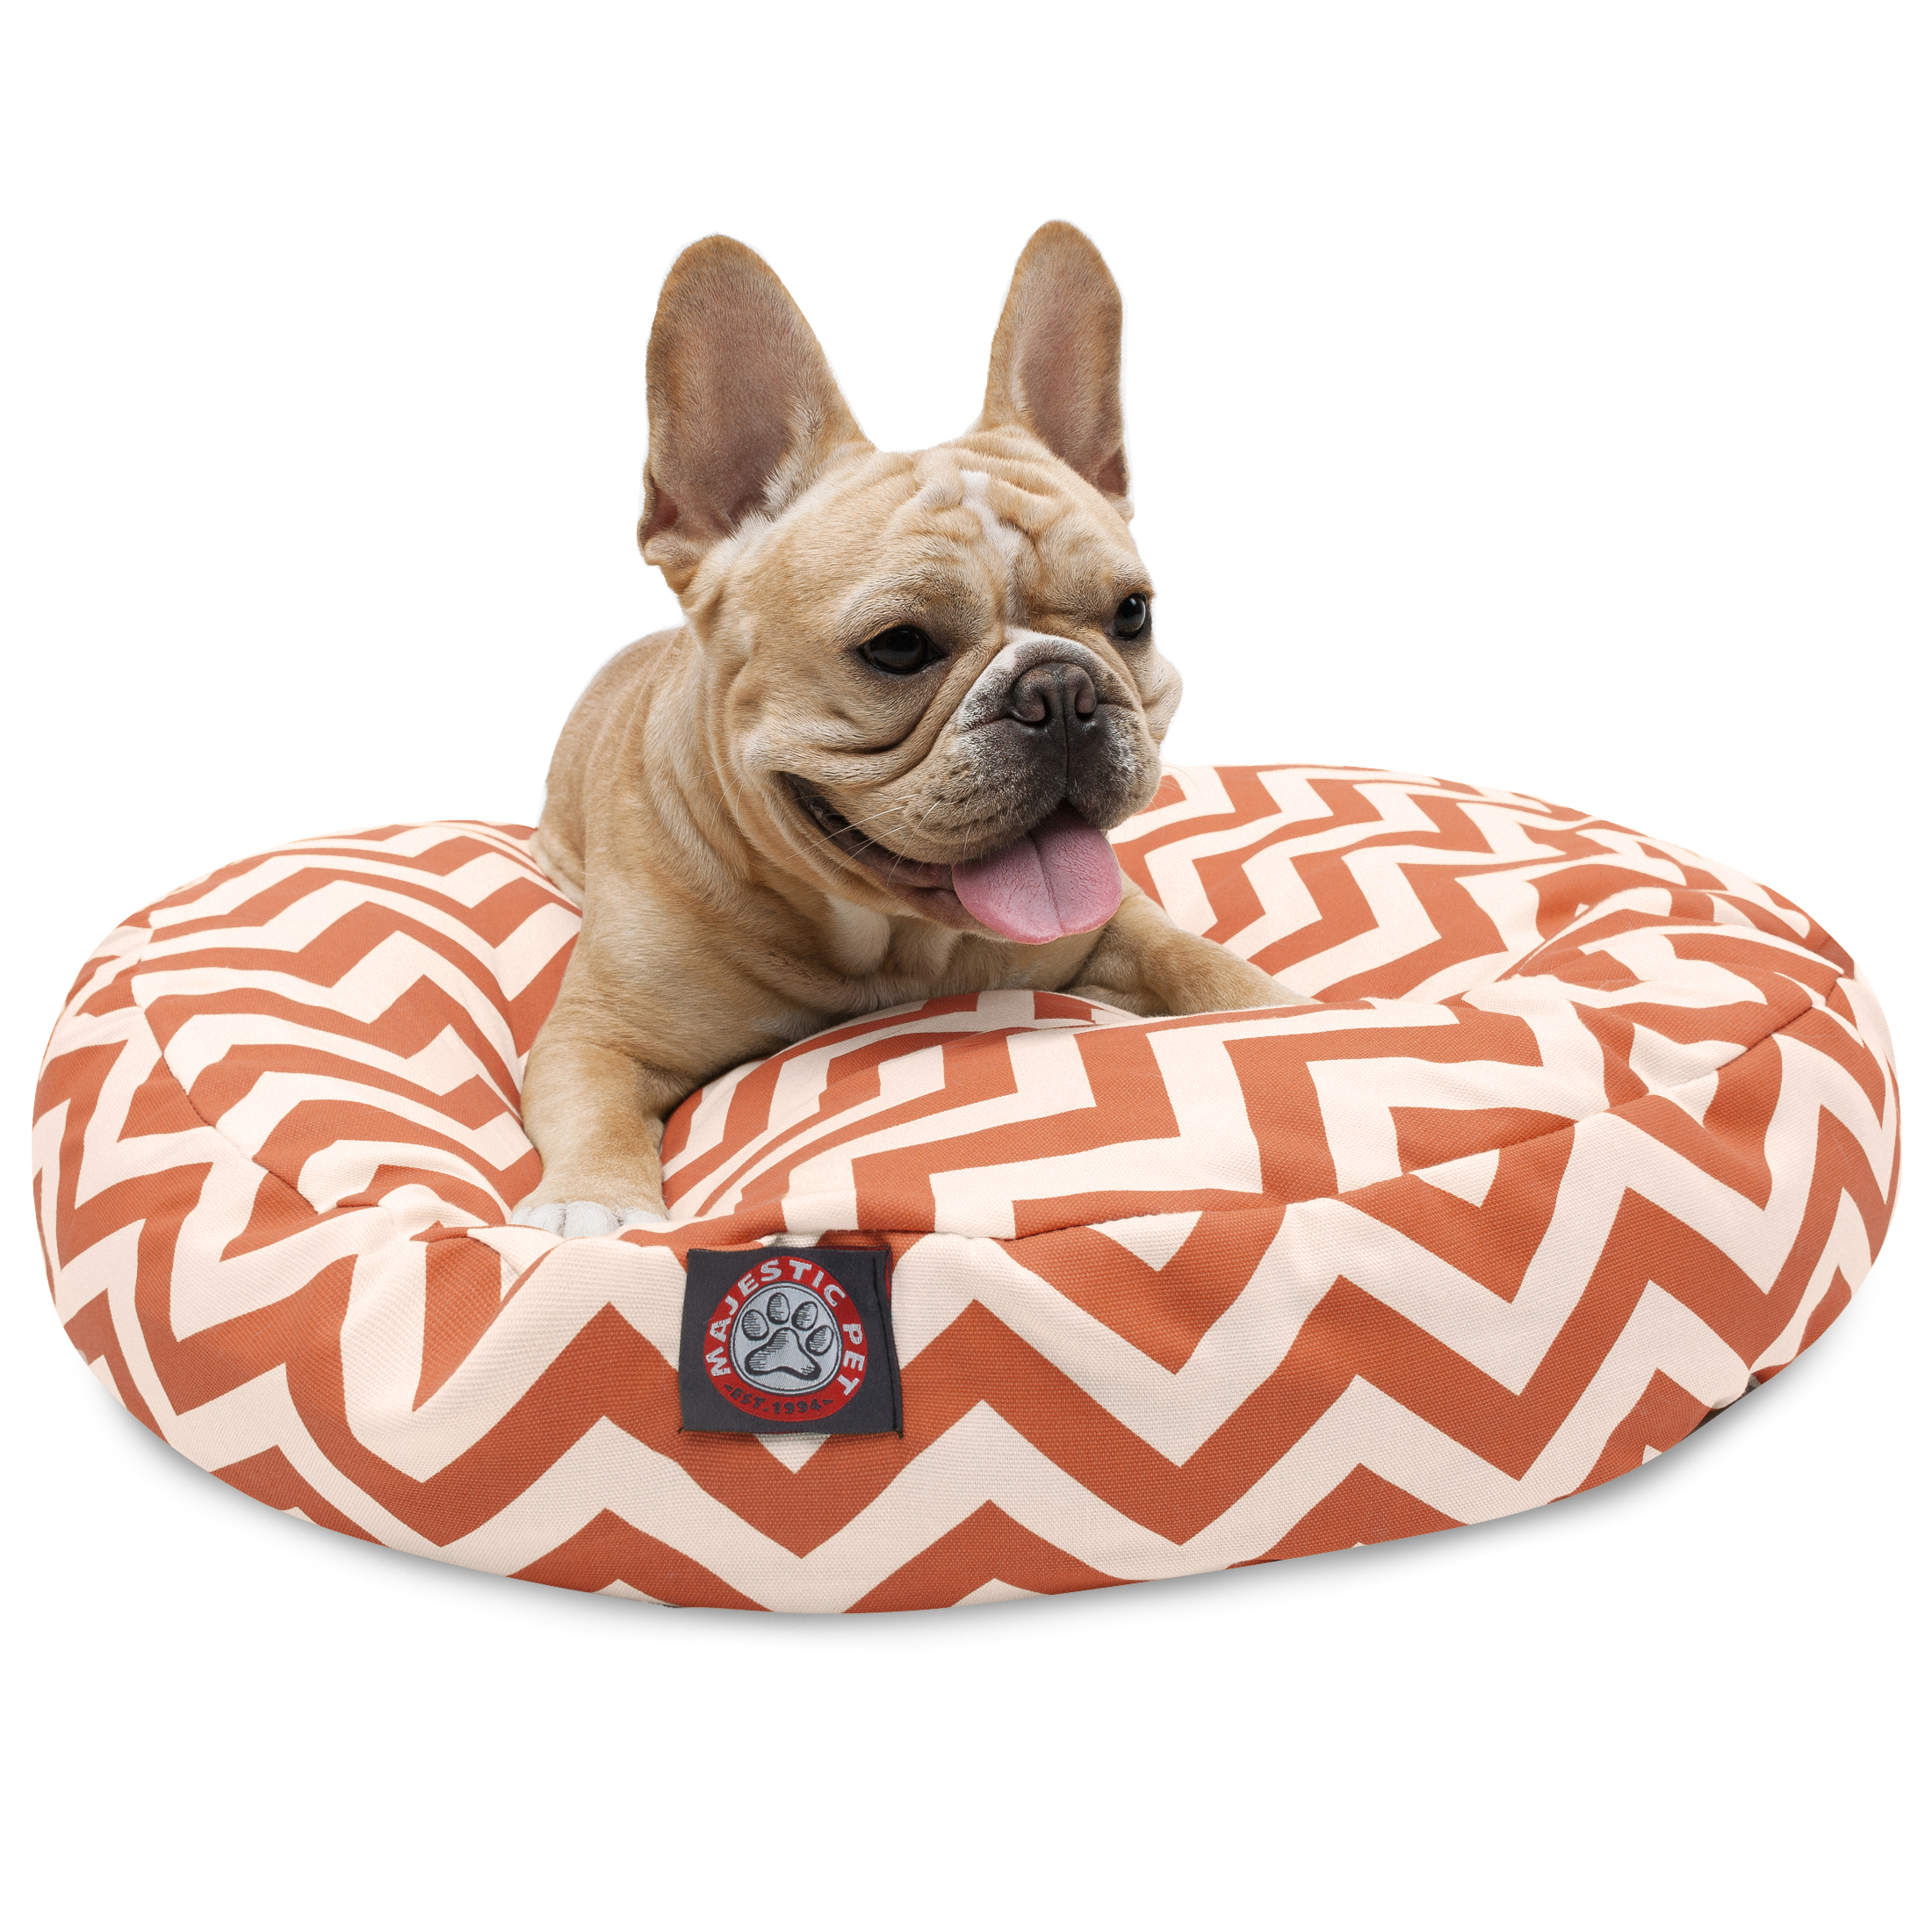 Majestic Pet Chevron Round Dog Bed Treated Polyester Removable Cover Machine Washable